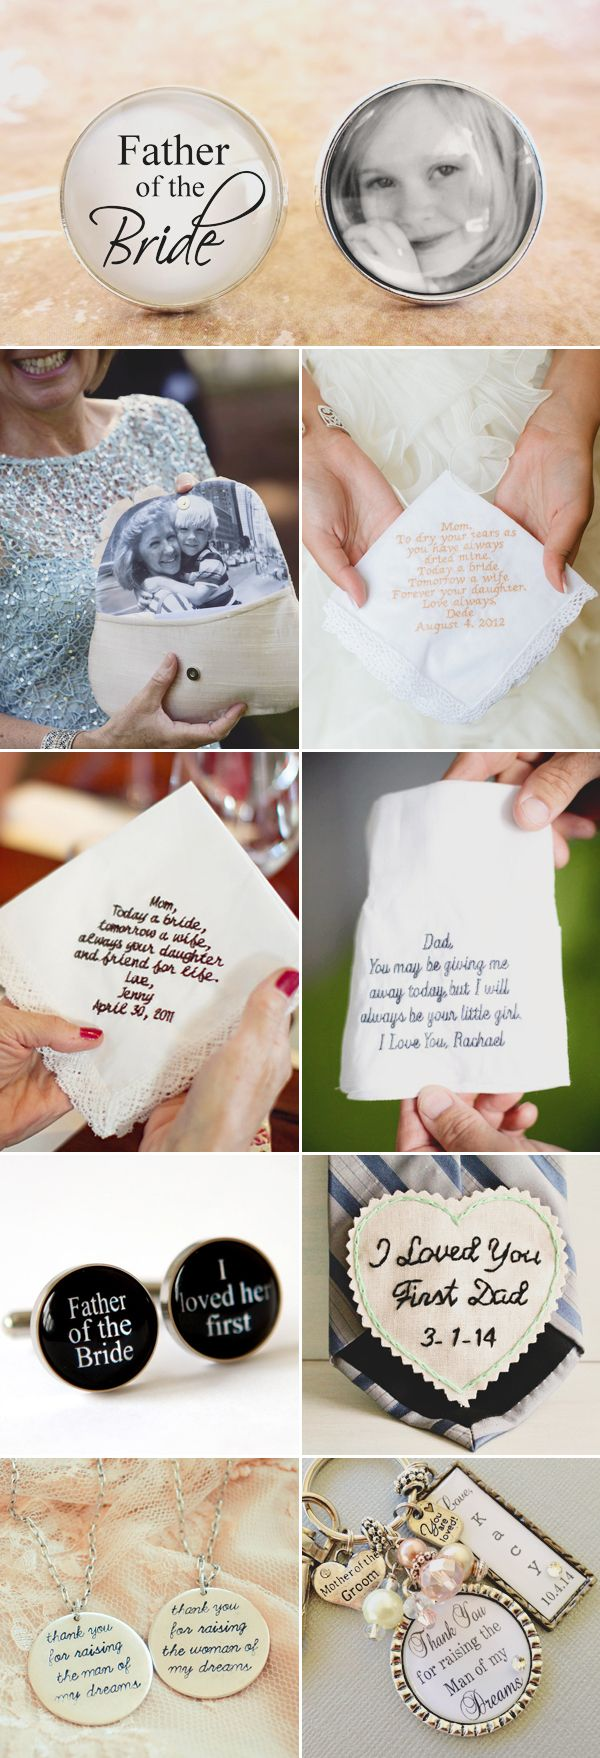 parent wedding gifts wedding gifts for parents 27 Creative Ways to Honor Your Parents at Your Wedding